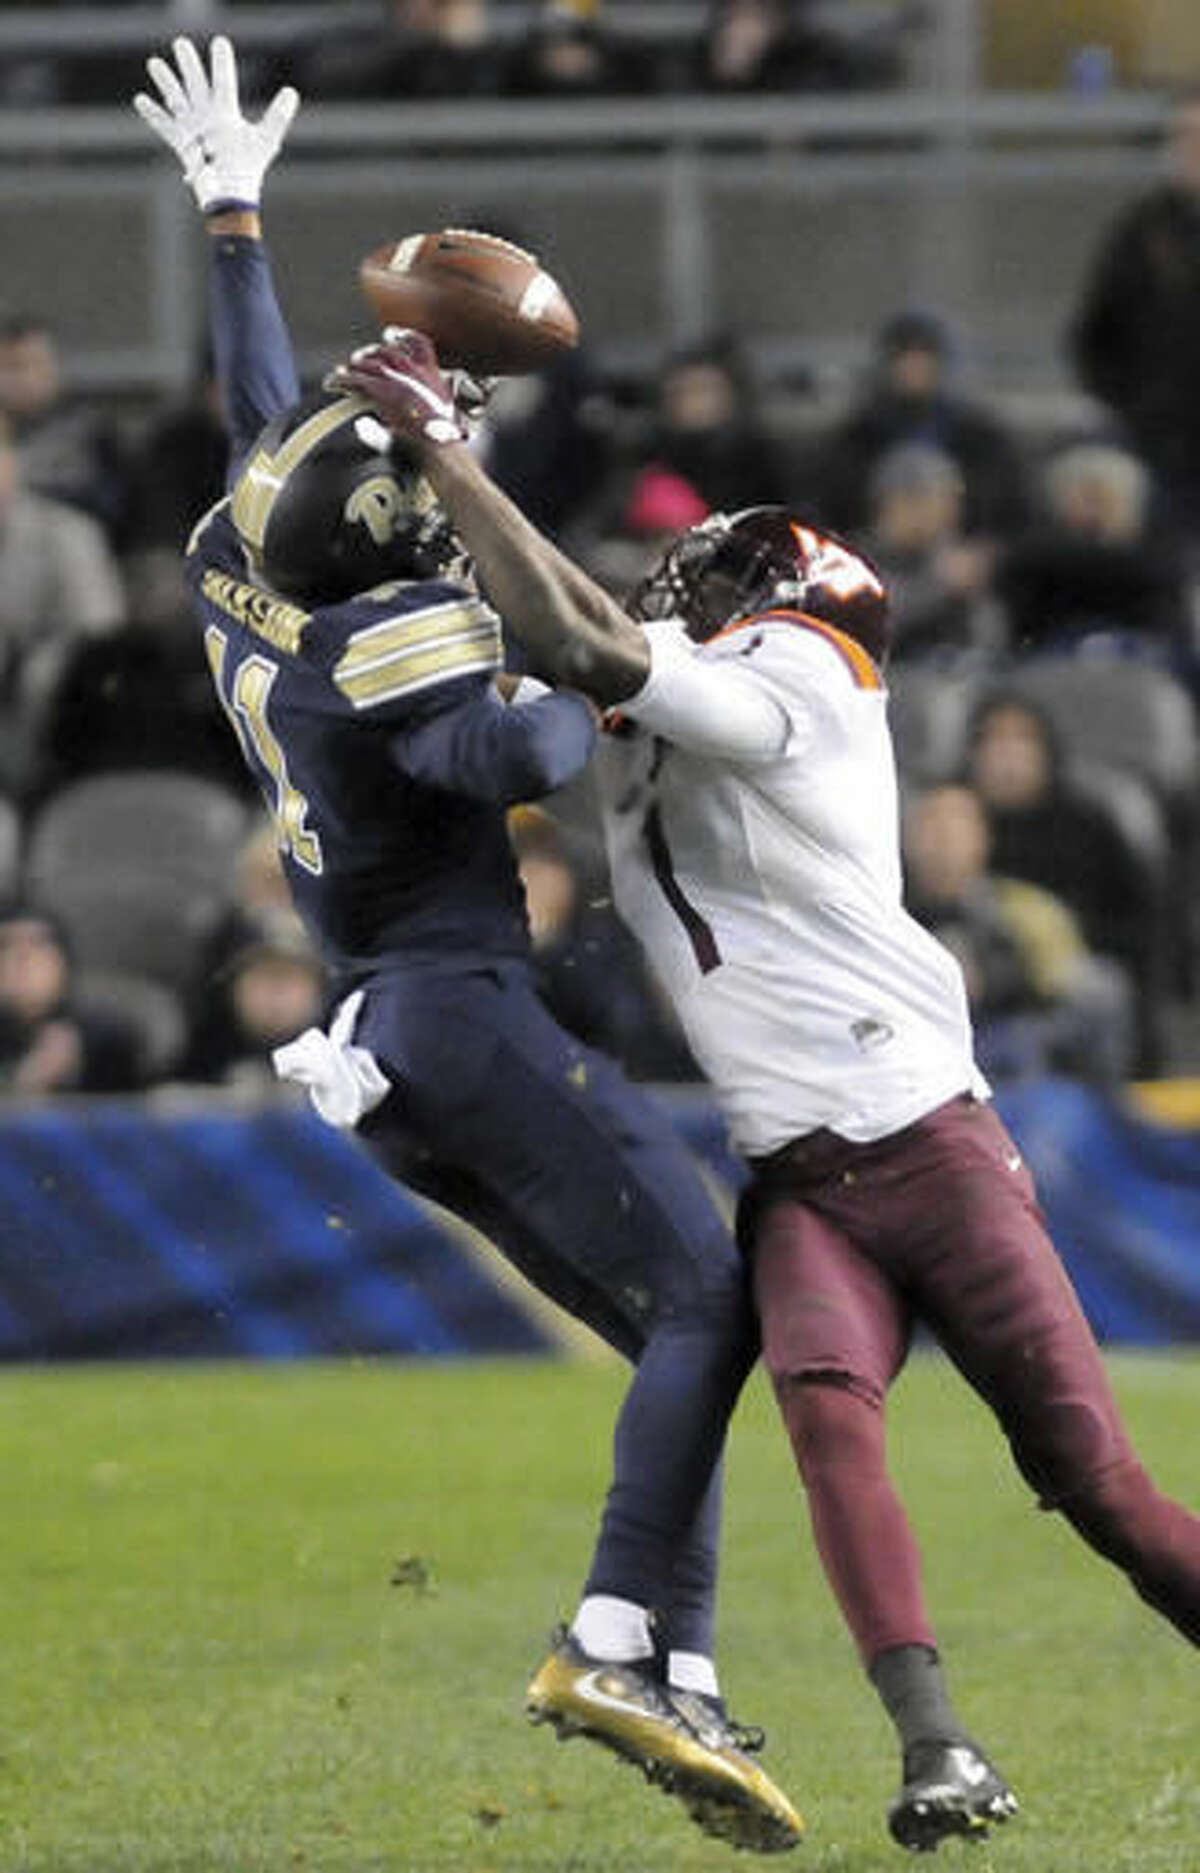 Pittsburgh defensive back Dane Jackson, left, cannot stop a completed pass to Isiah Ford, right, in the second half of an NCAA college football game, Thursday, Oct. 27, 2016, in Pittsburgh. (AP Photo/John Heller)